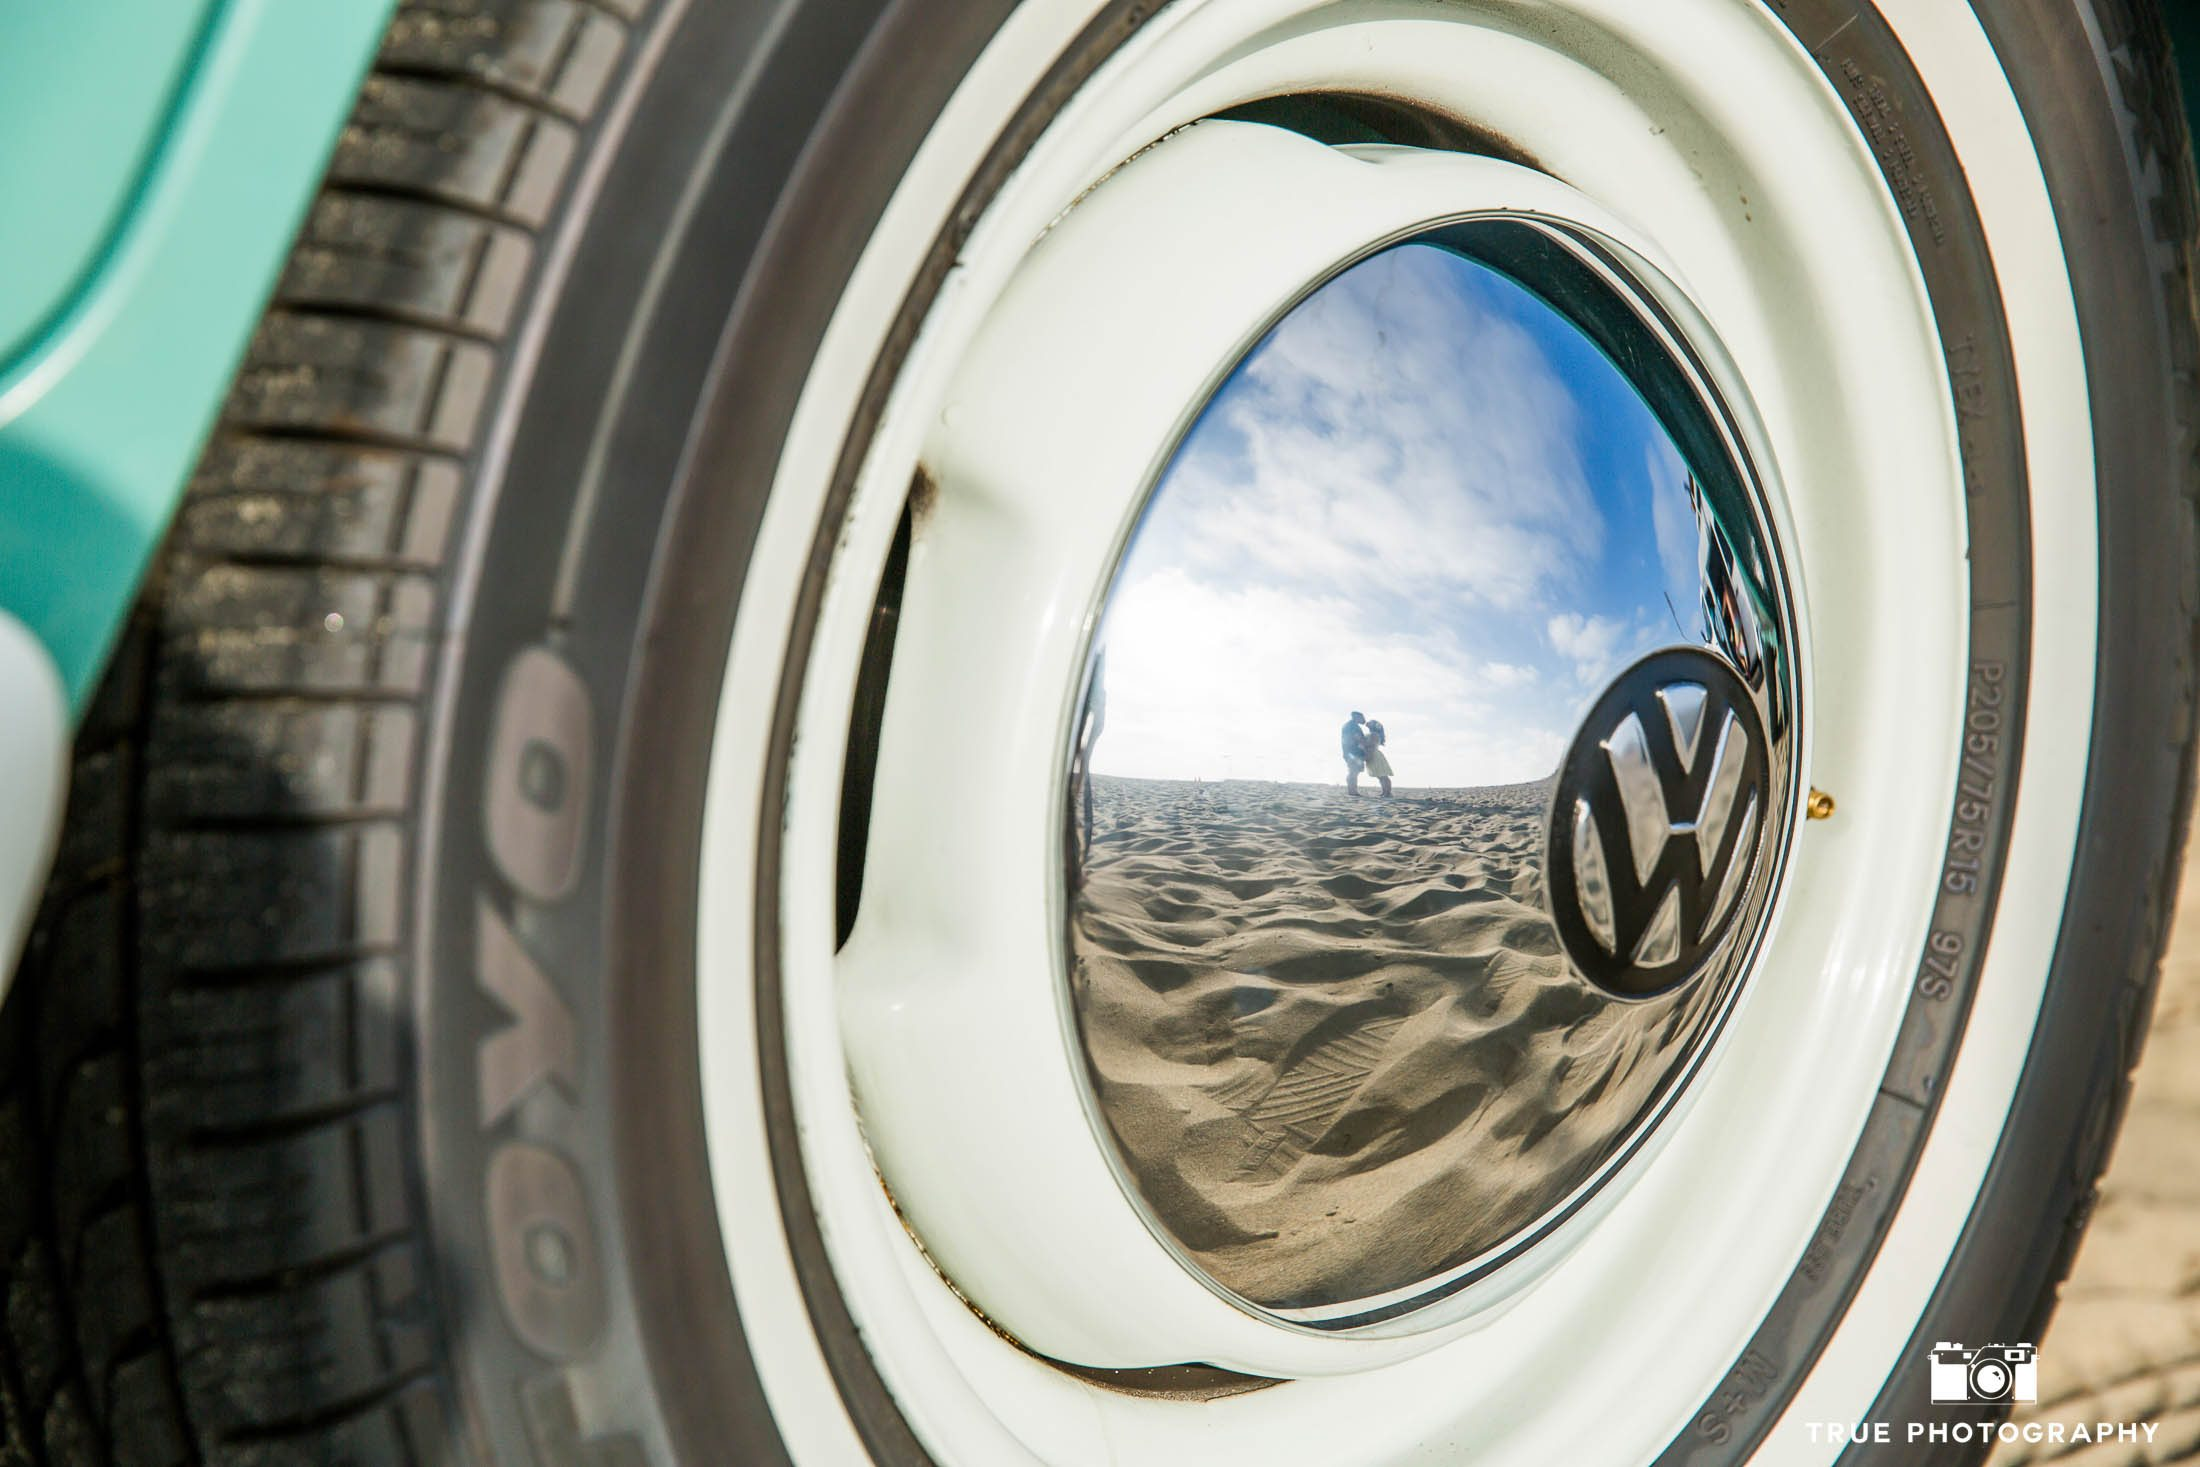 Reflection of engaged couple kissing in metal hubcap of volkswagen bus